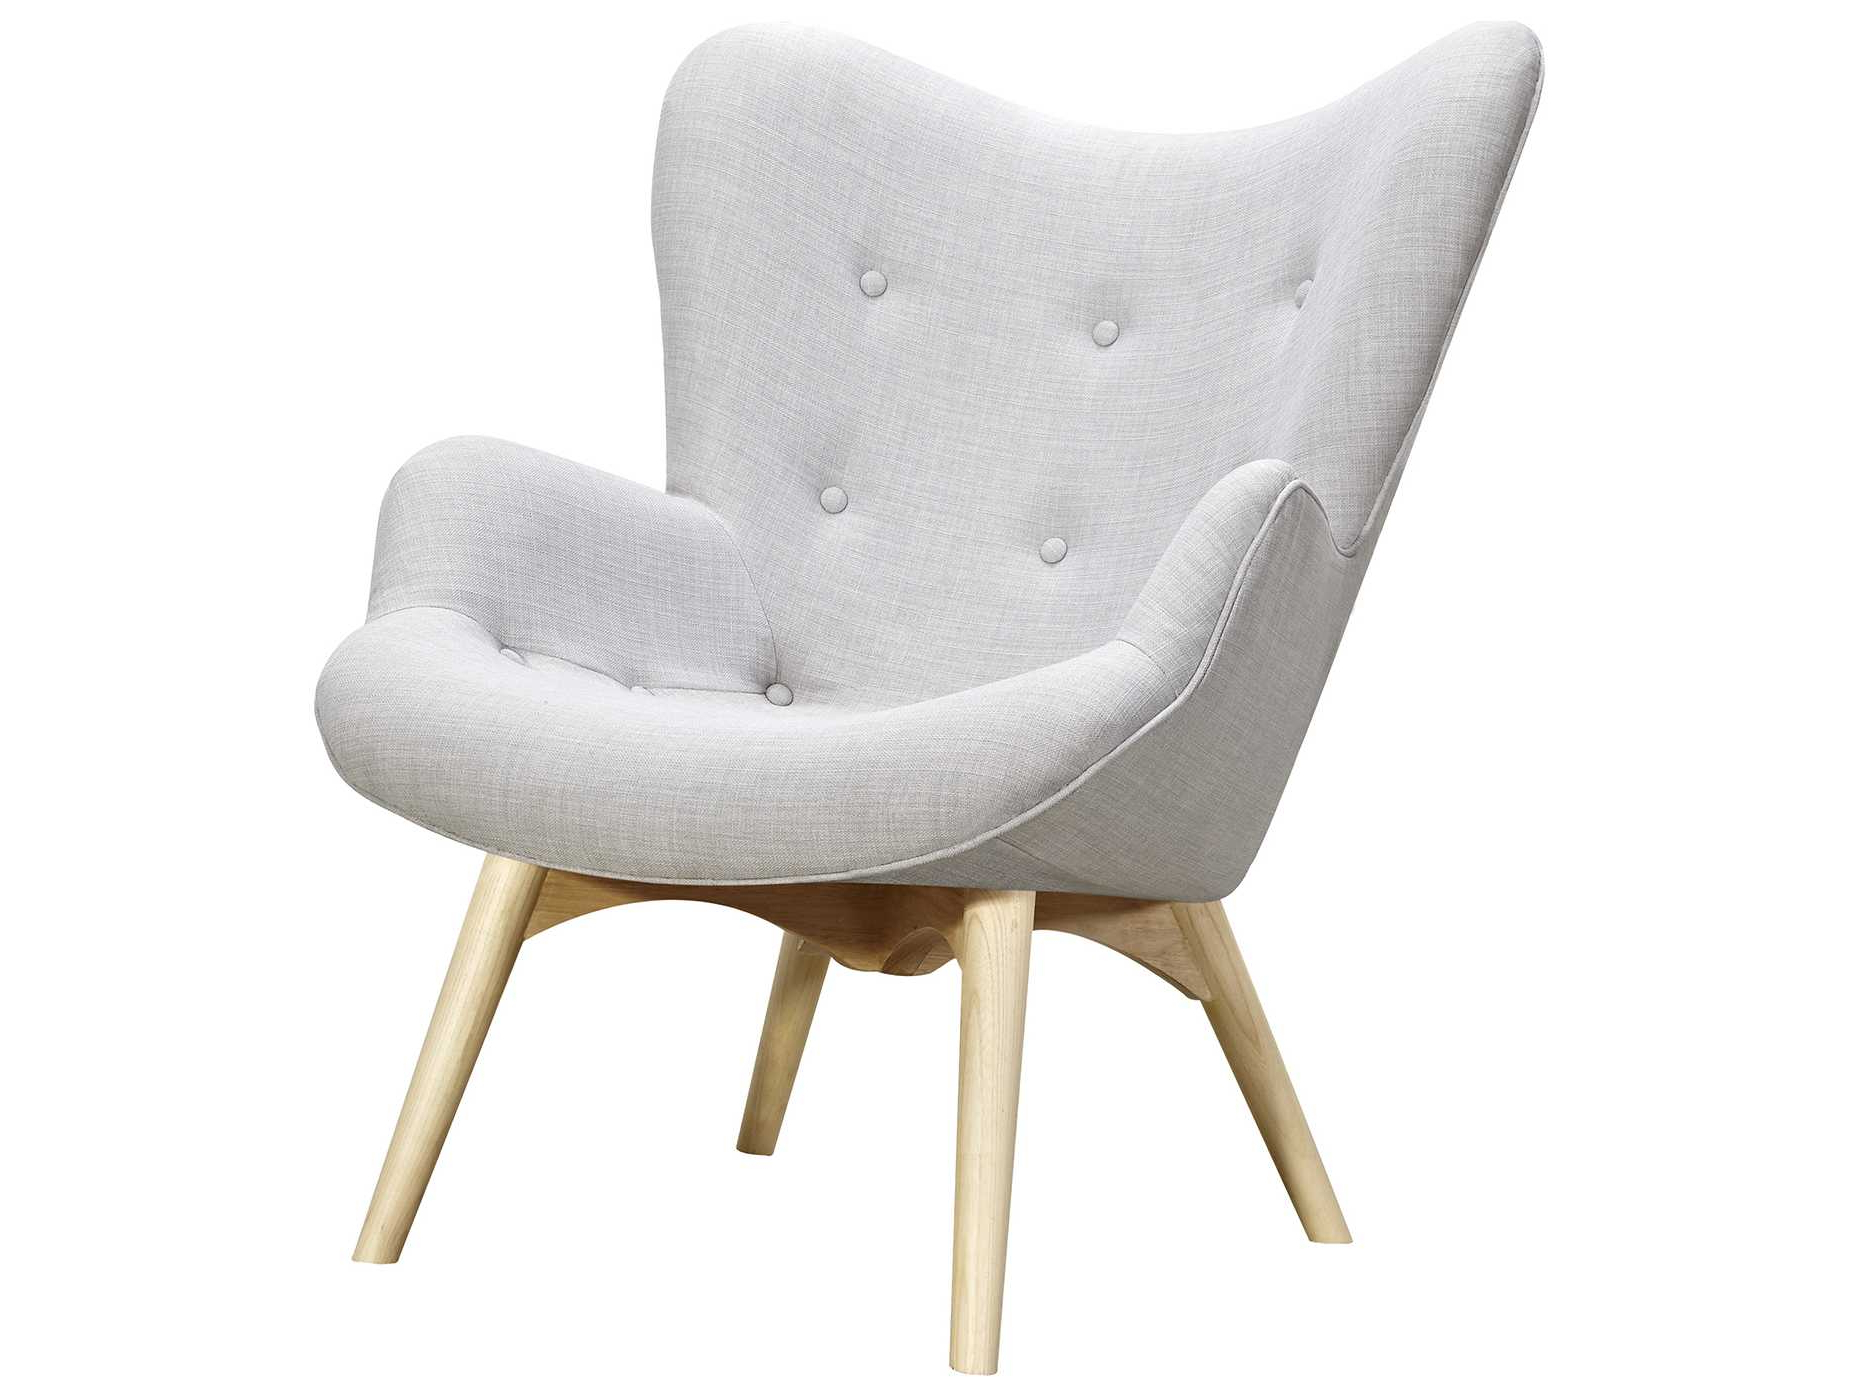 Most Current Aidan Ii Swivel Accent Chairs Pertaining To Nyekoncept Aiden Glacier White Accent Chair & Ottoman With Natural (View 16 of 20)